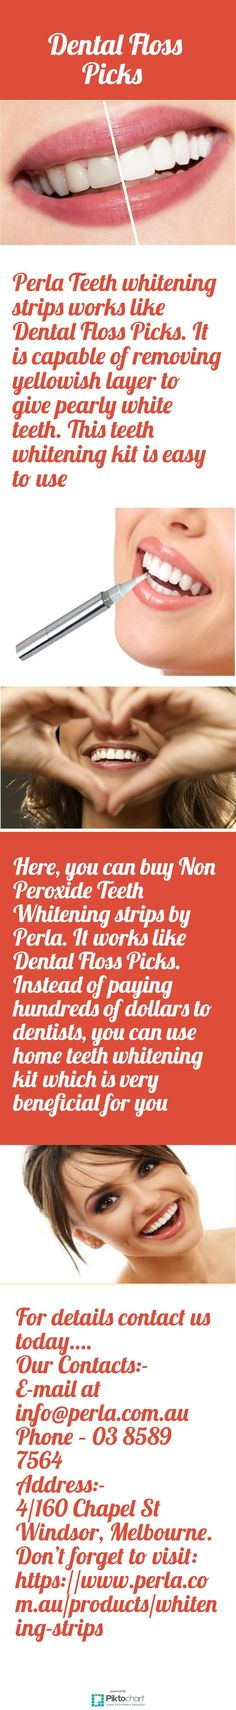 Dental Floss Picks, Whitening Kit, White Teeth, Easy To Use, Website, Products, Gadget